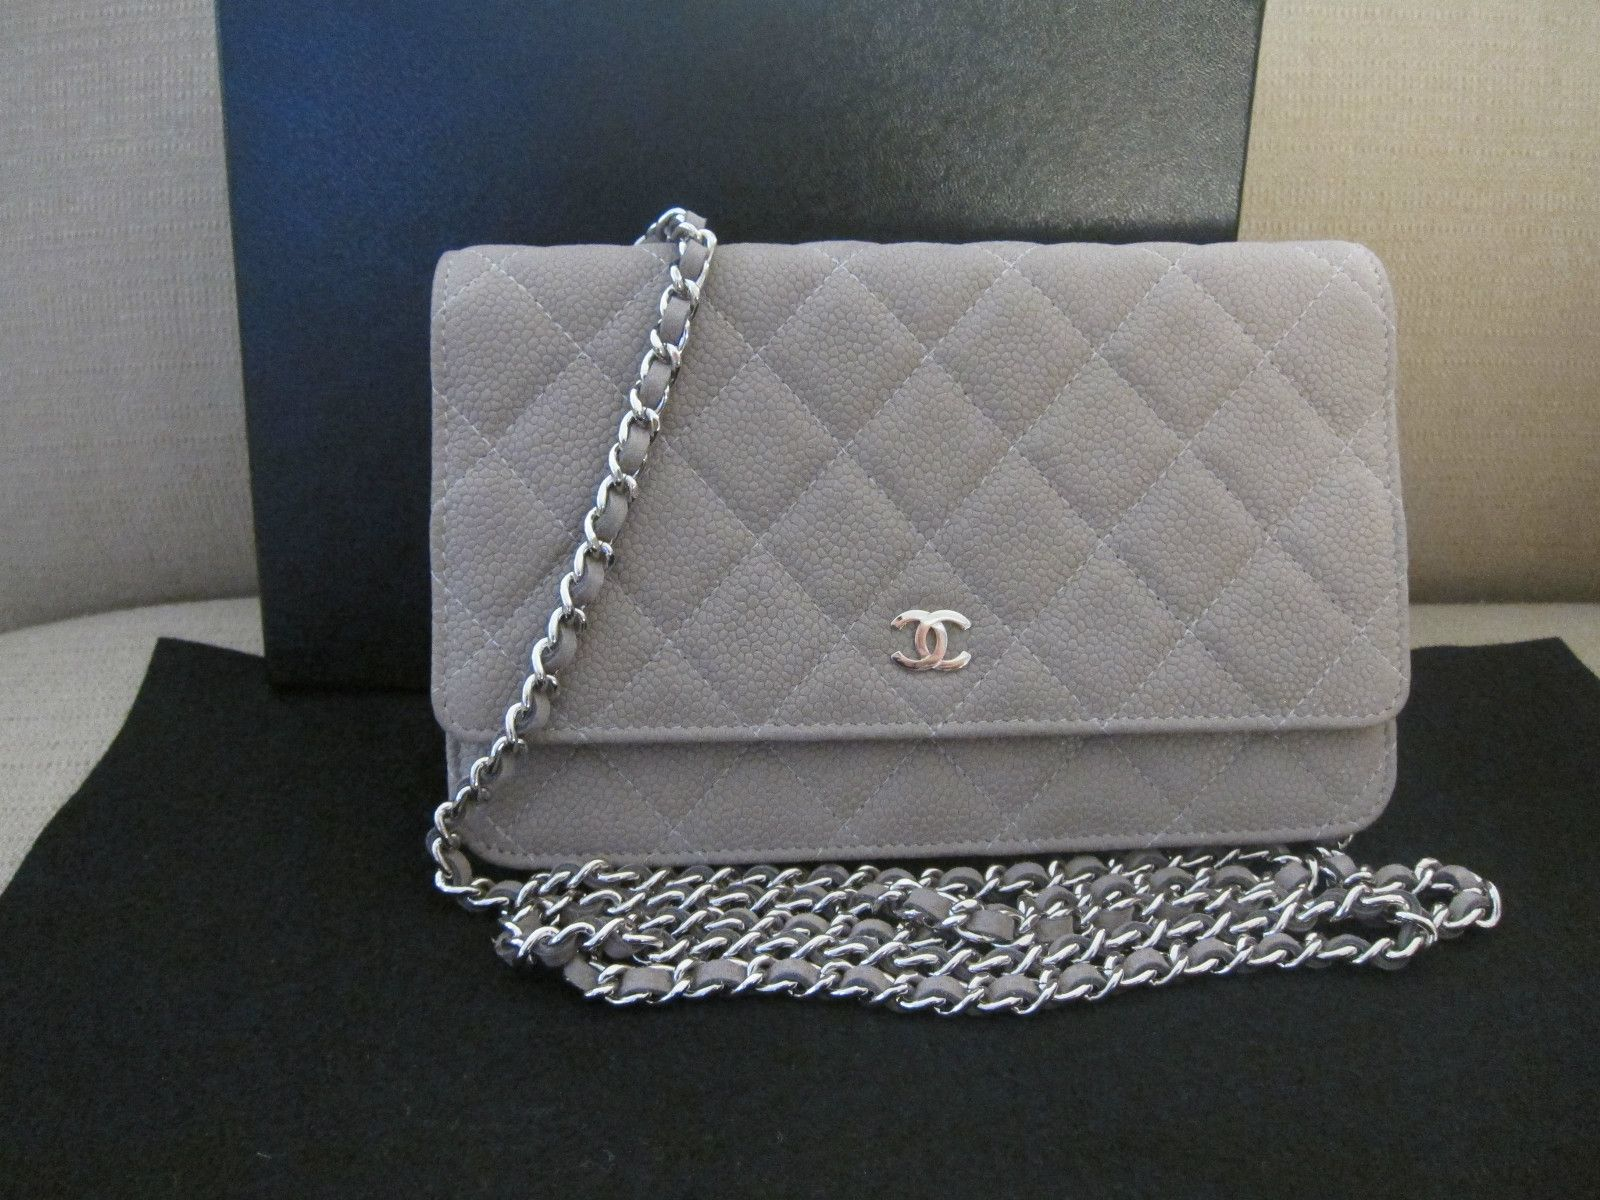 e1dbfd7ac5fc Check out Jiye's pretty Chanel Wallet on Chain Grey Suede Caviar Leather WOC  Bag - for sale on eBay